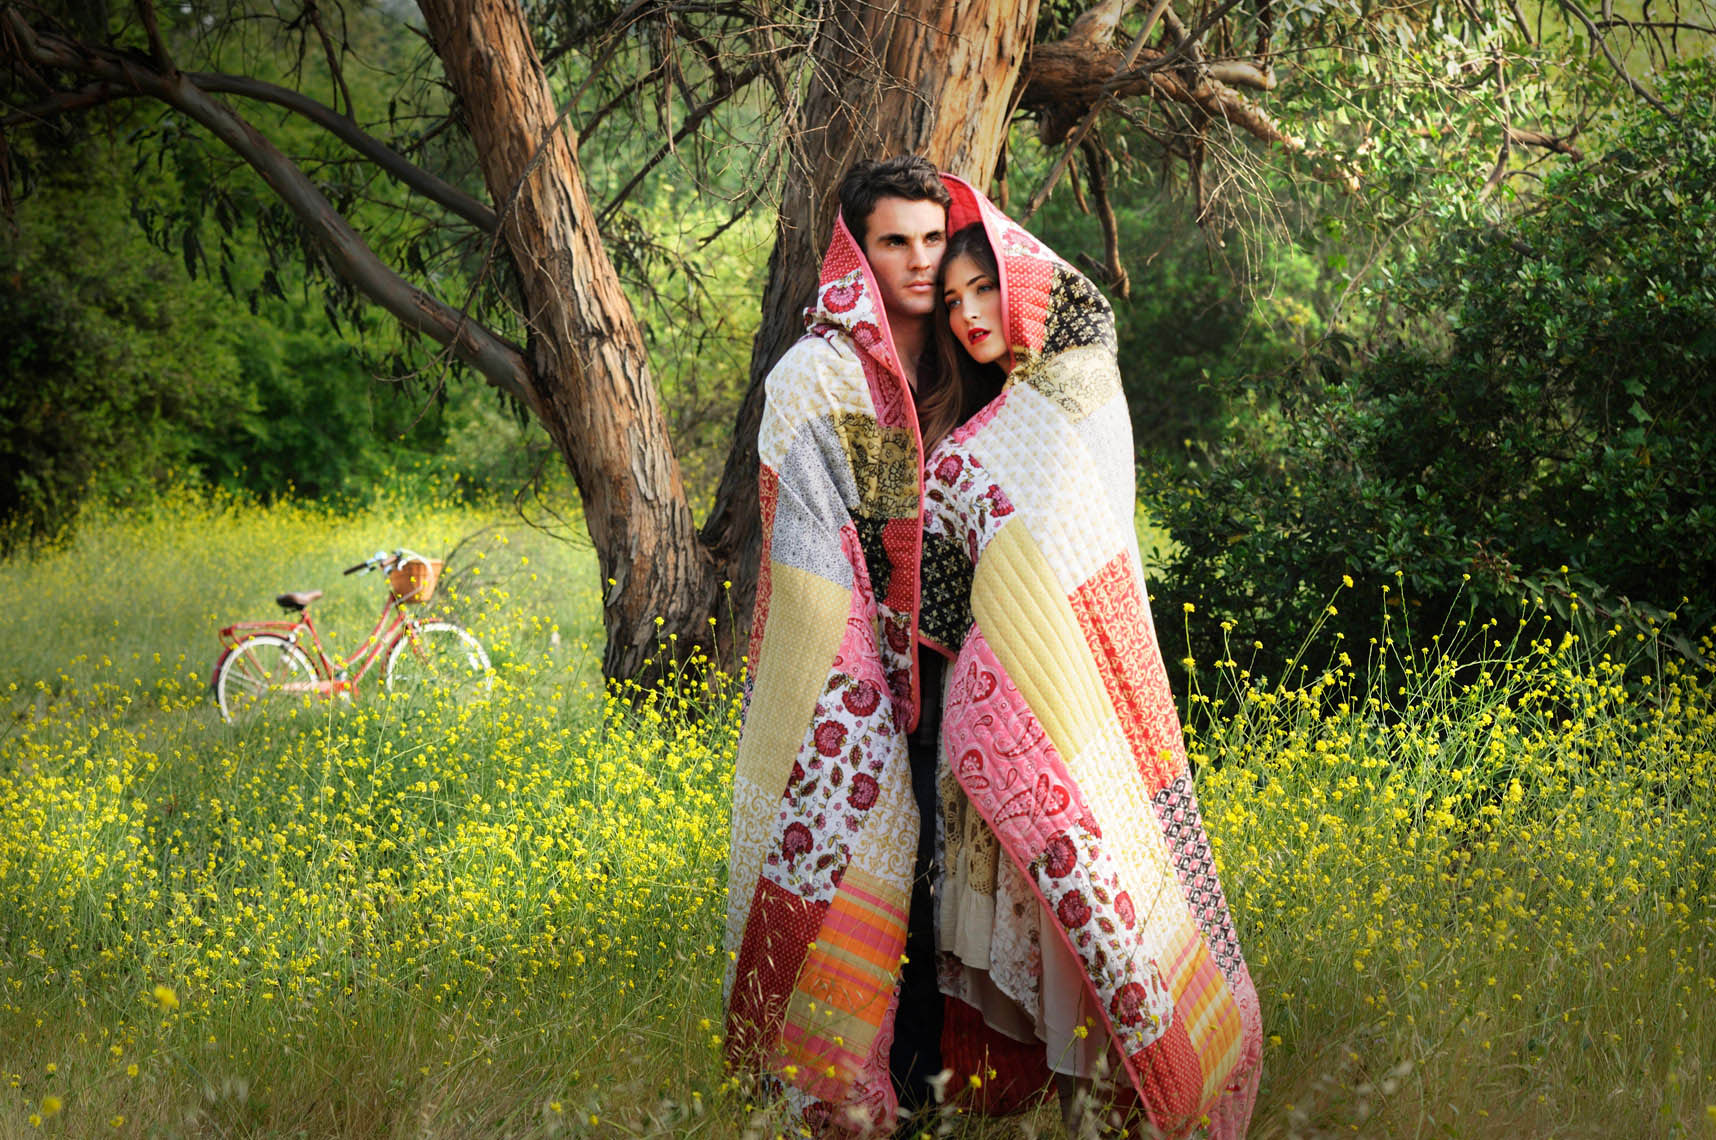 Portrait-of-young-couple-with-blanket-wrapped-around-them-in-a-field-of-yellow-flowers-lifestyle-photographer.